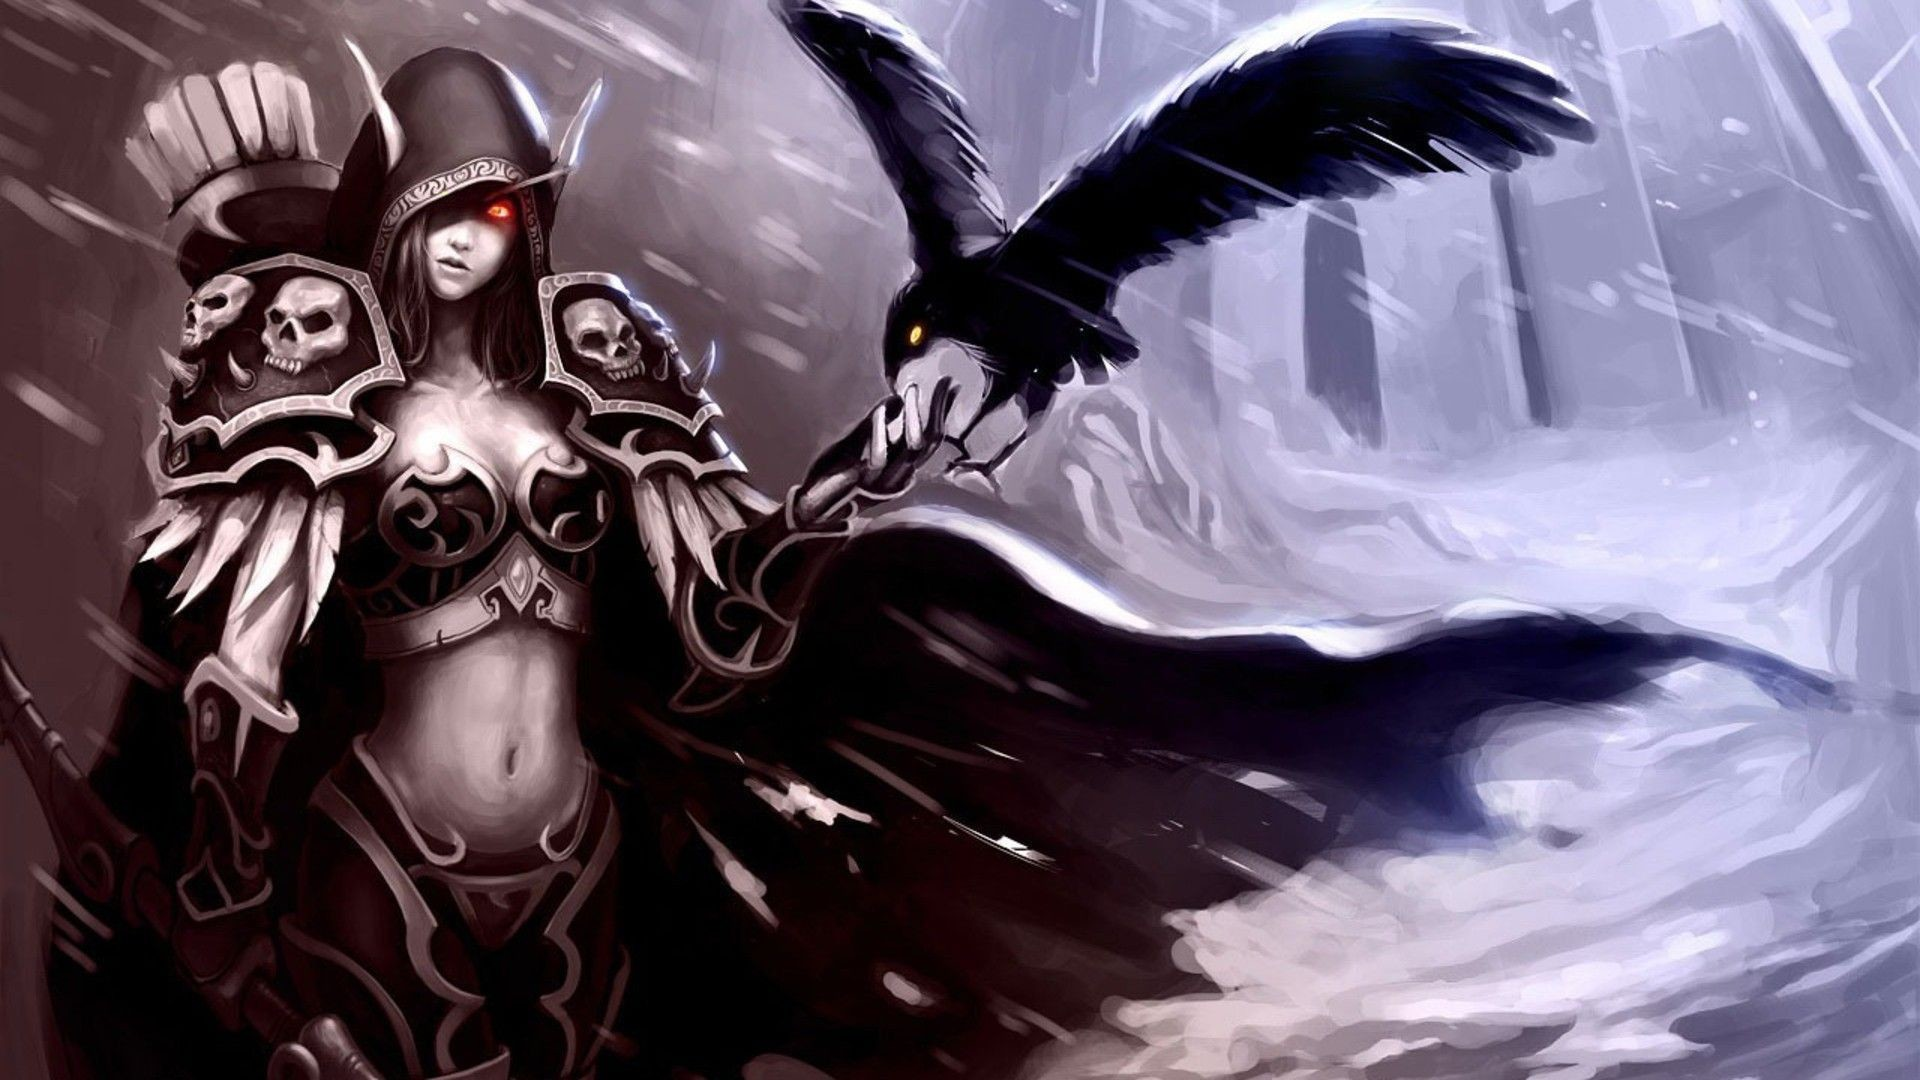 Res: 1920x1080, Sylvanas Windrunner - World Of Warcraft HD Lovely Wallpaper Free .